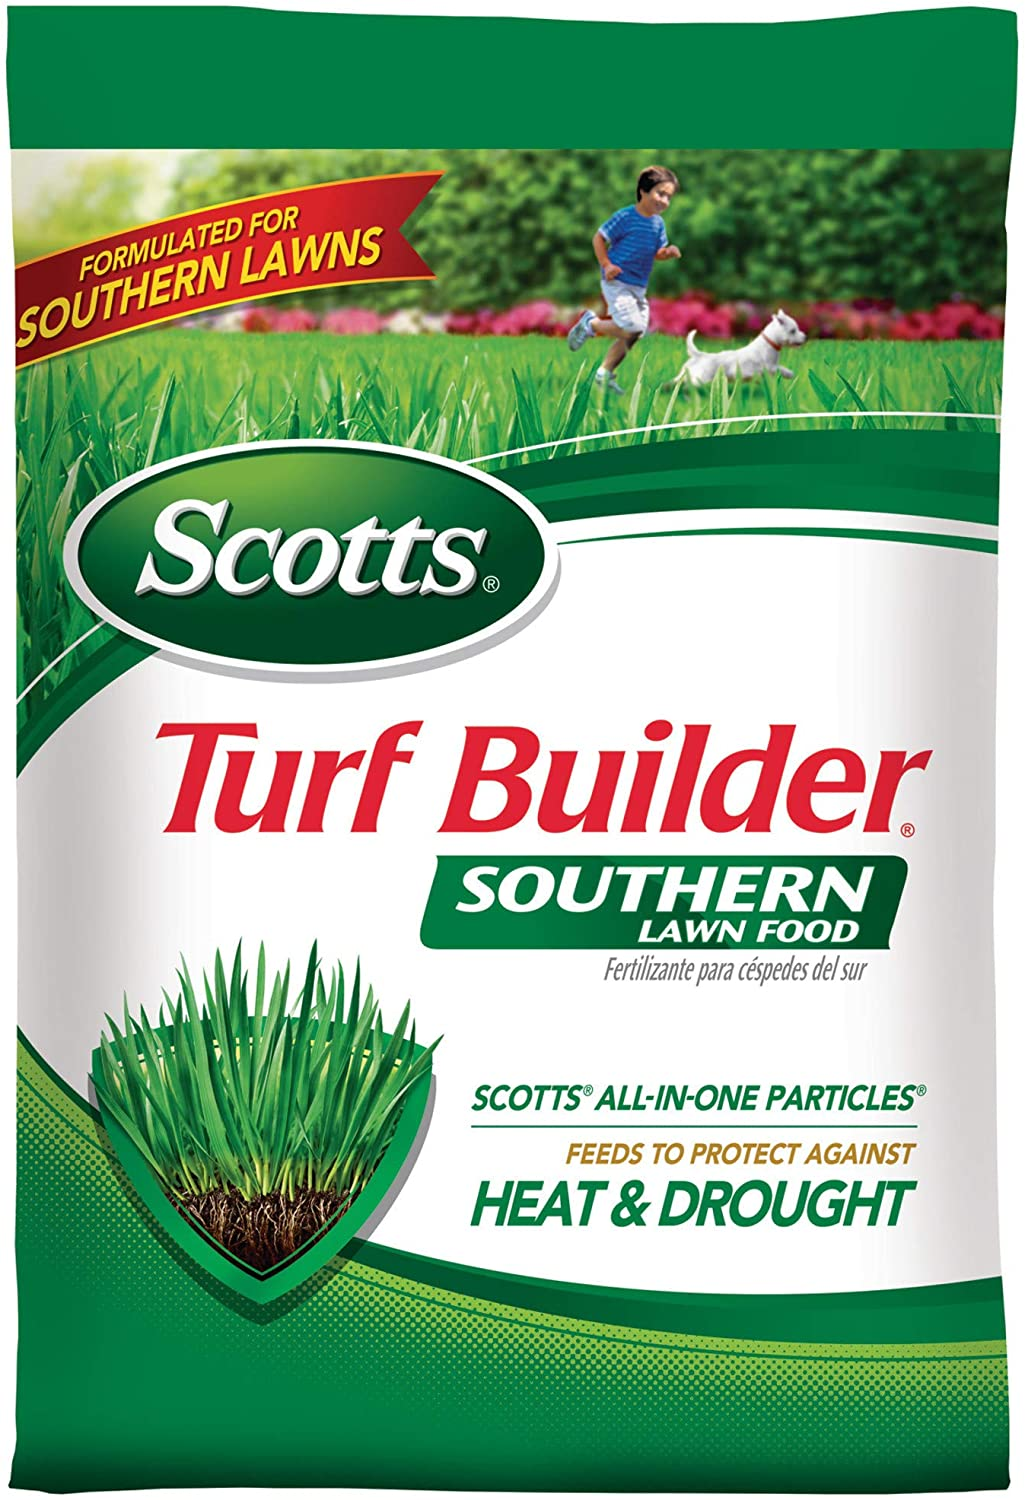 Scotts Turf Builder Southern Lawn Food